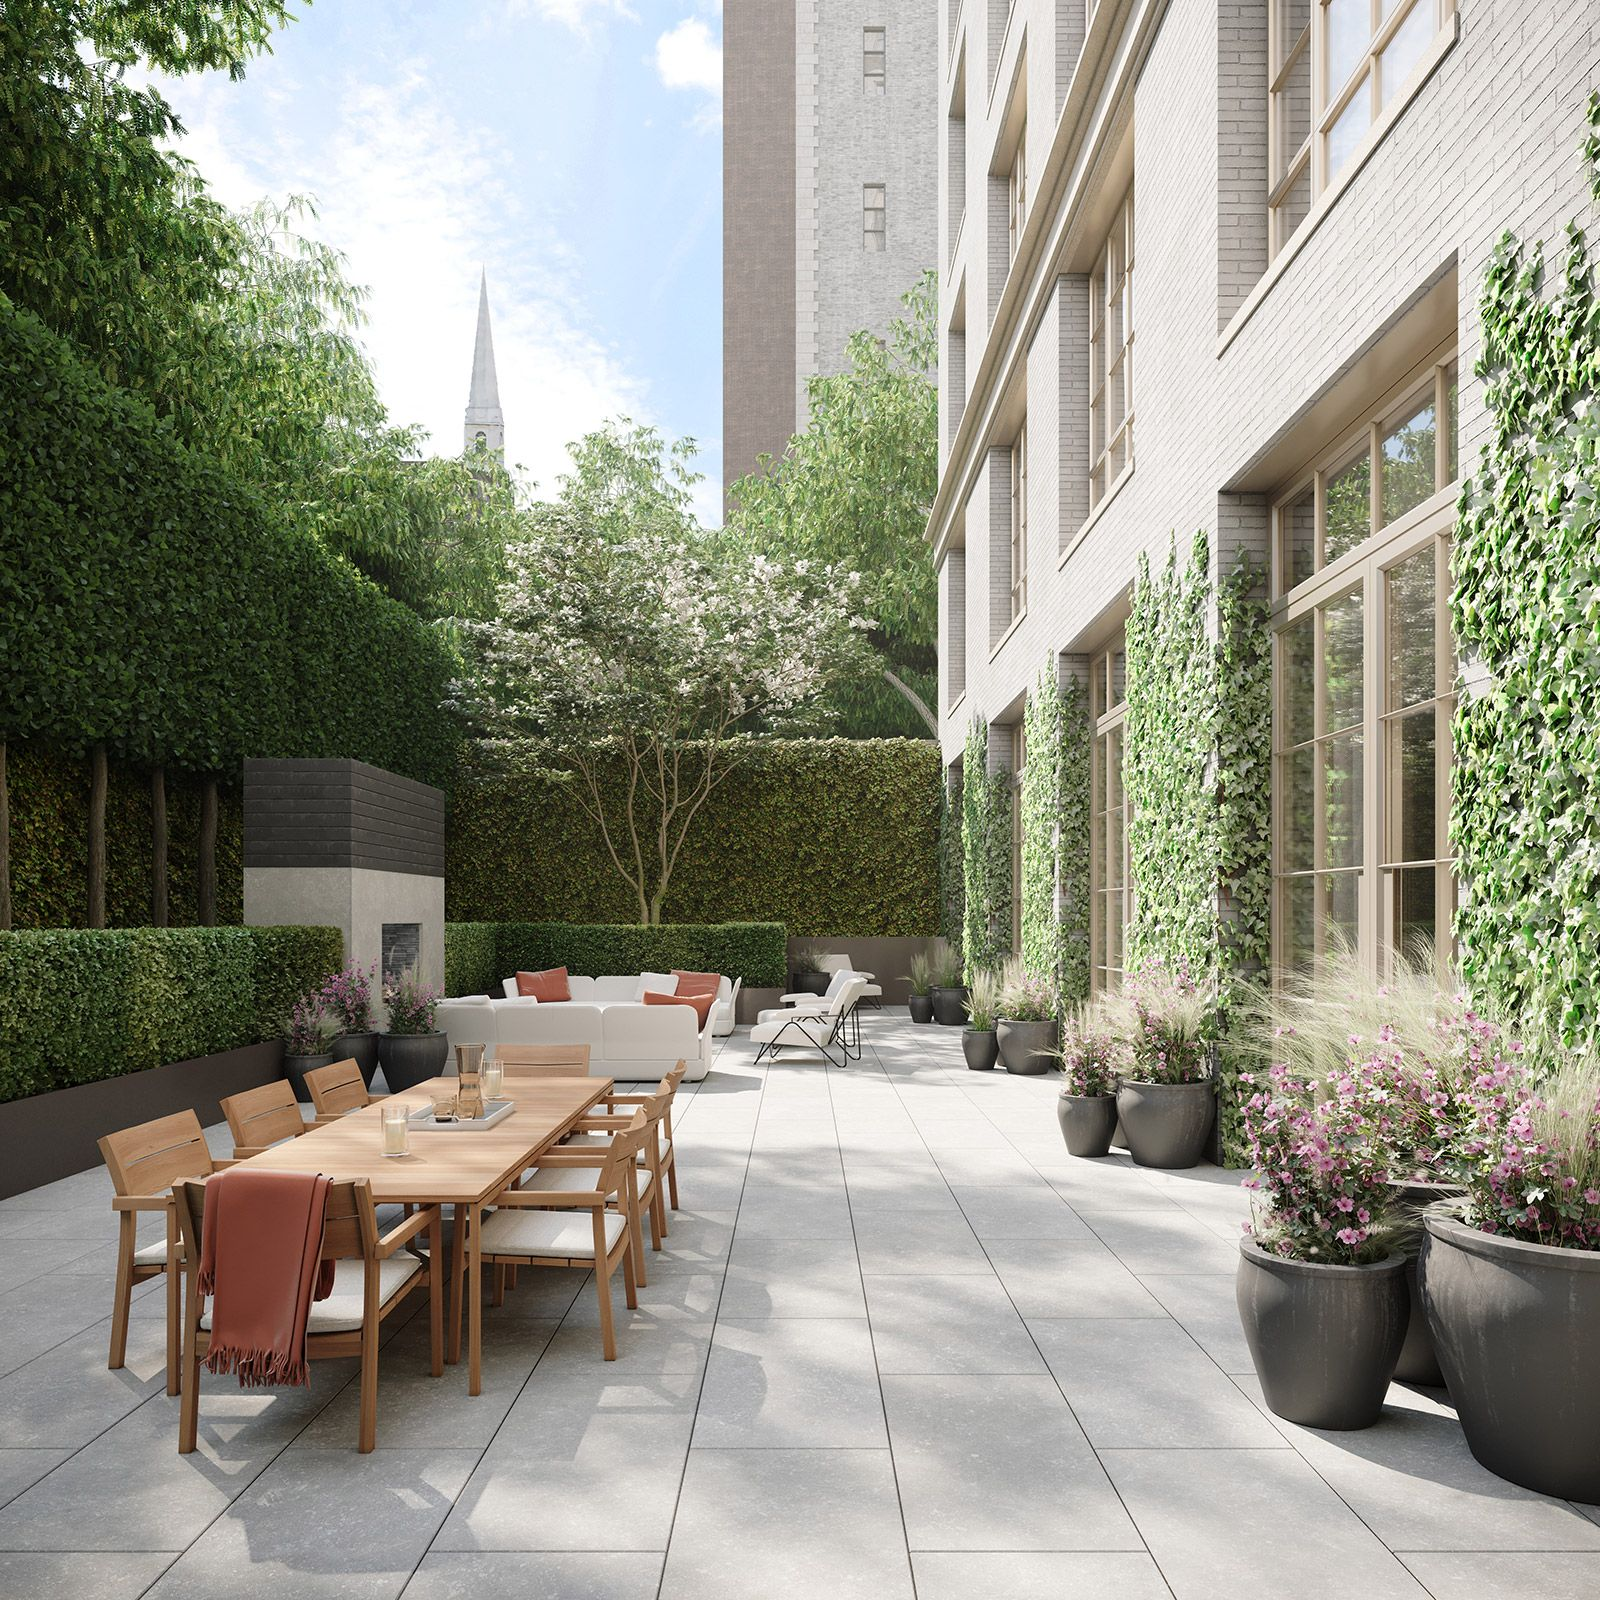 The Townhouse private garden with outdoor fireplace